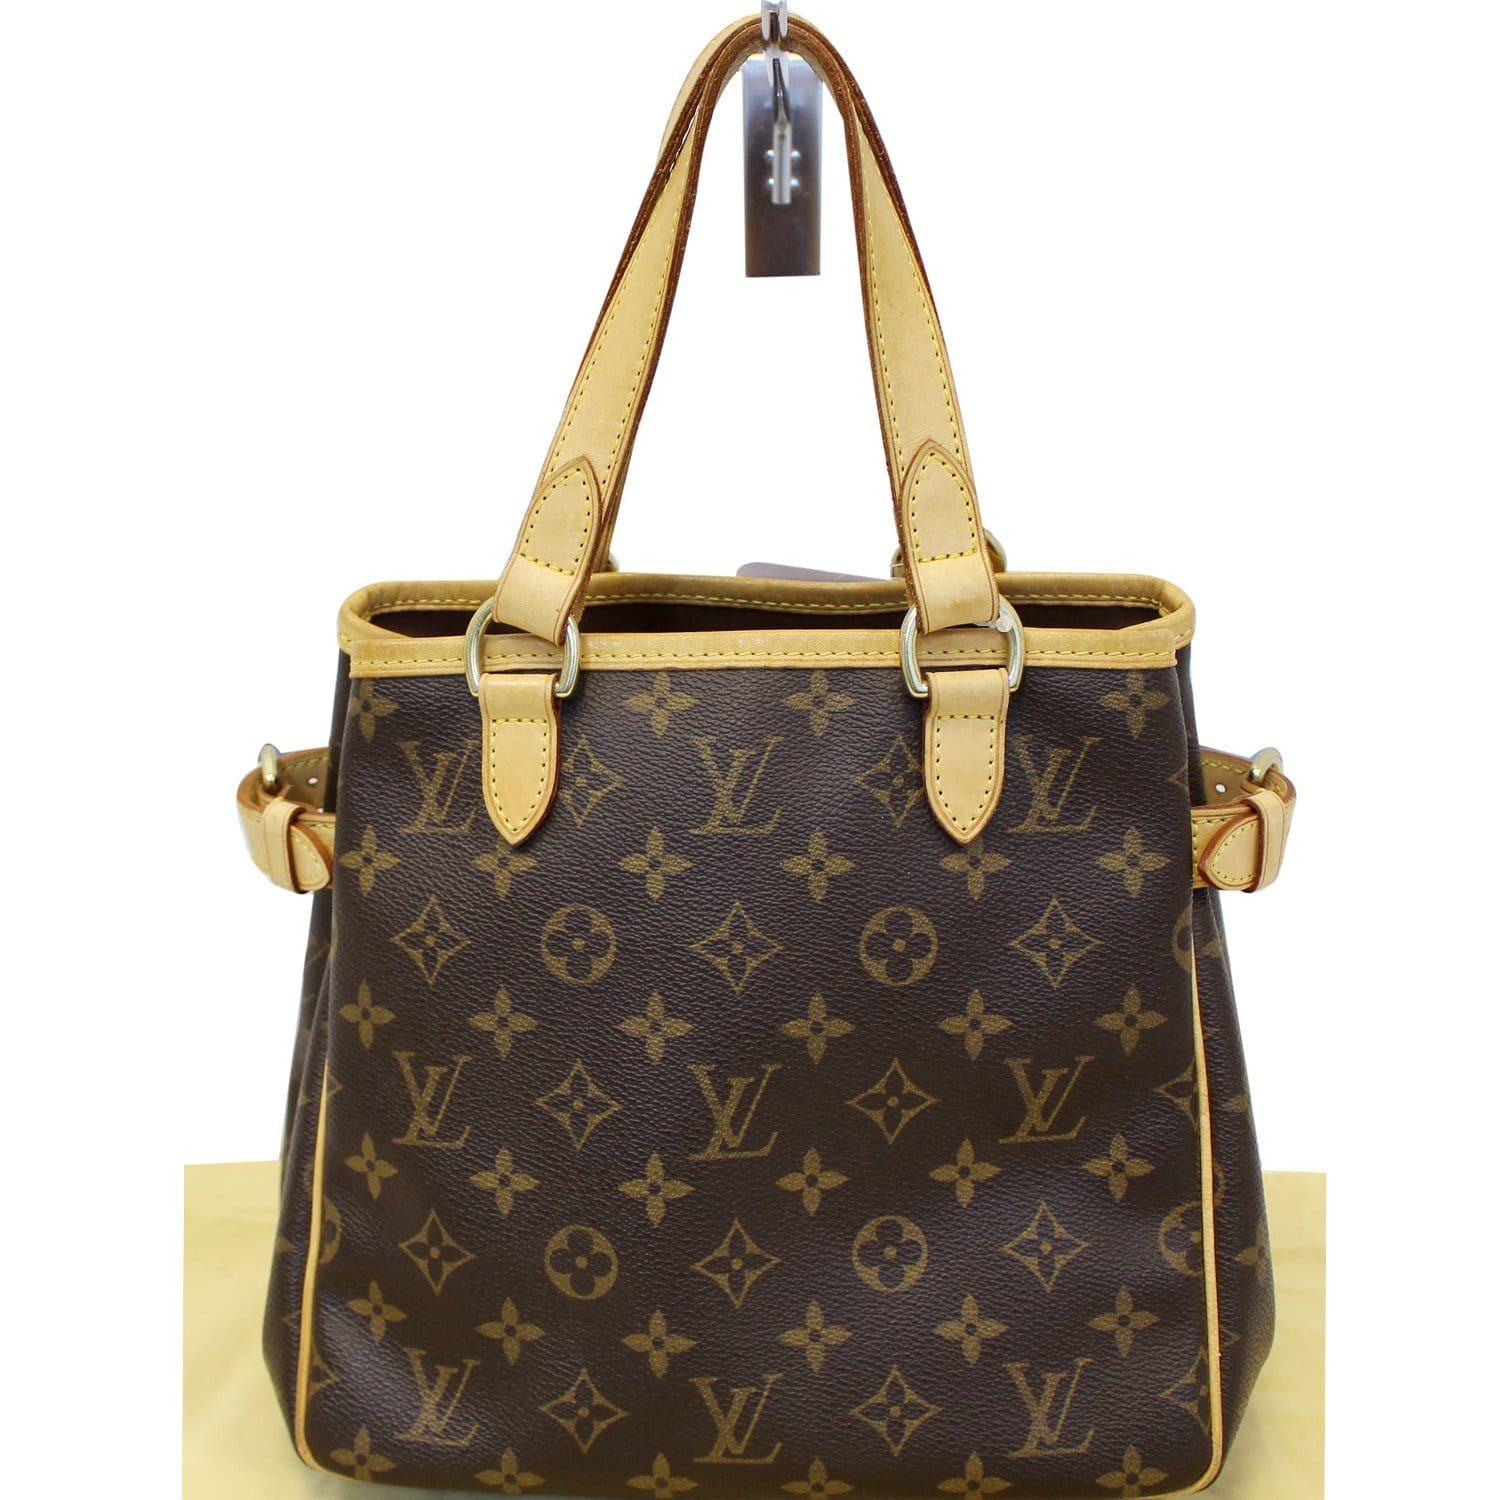 741e1b217c69 LOUIS VUITTON Batignolles Vertical Monogram Canvas Tote Handbag